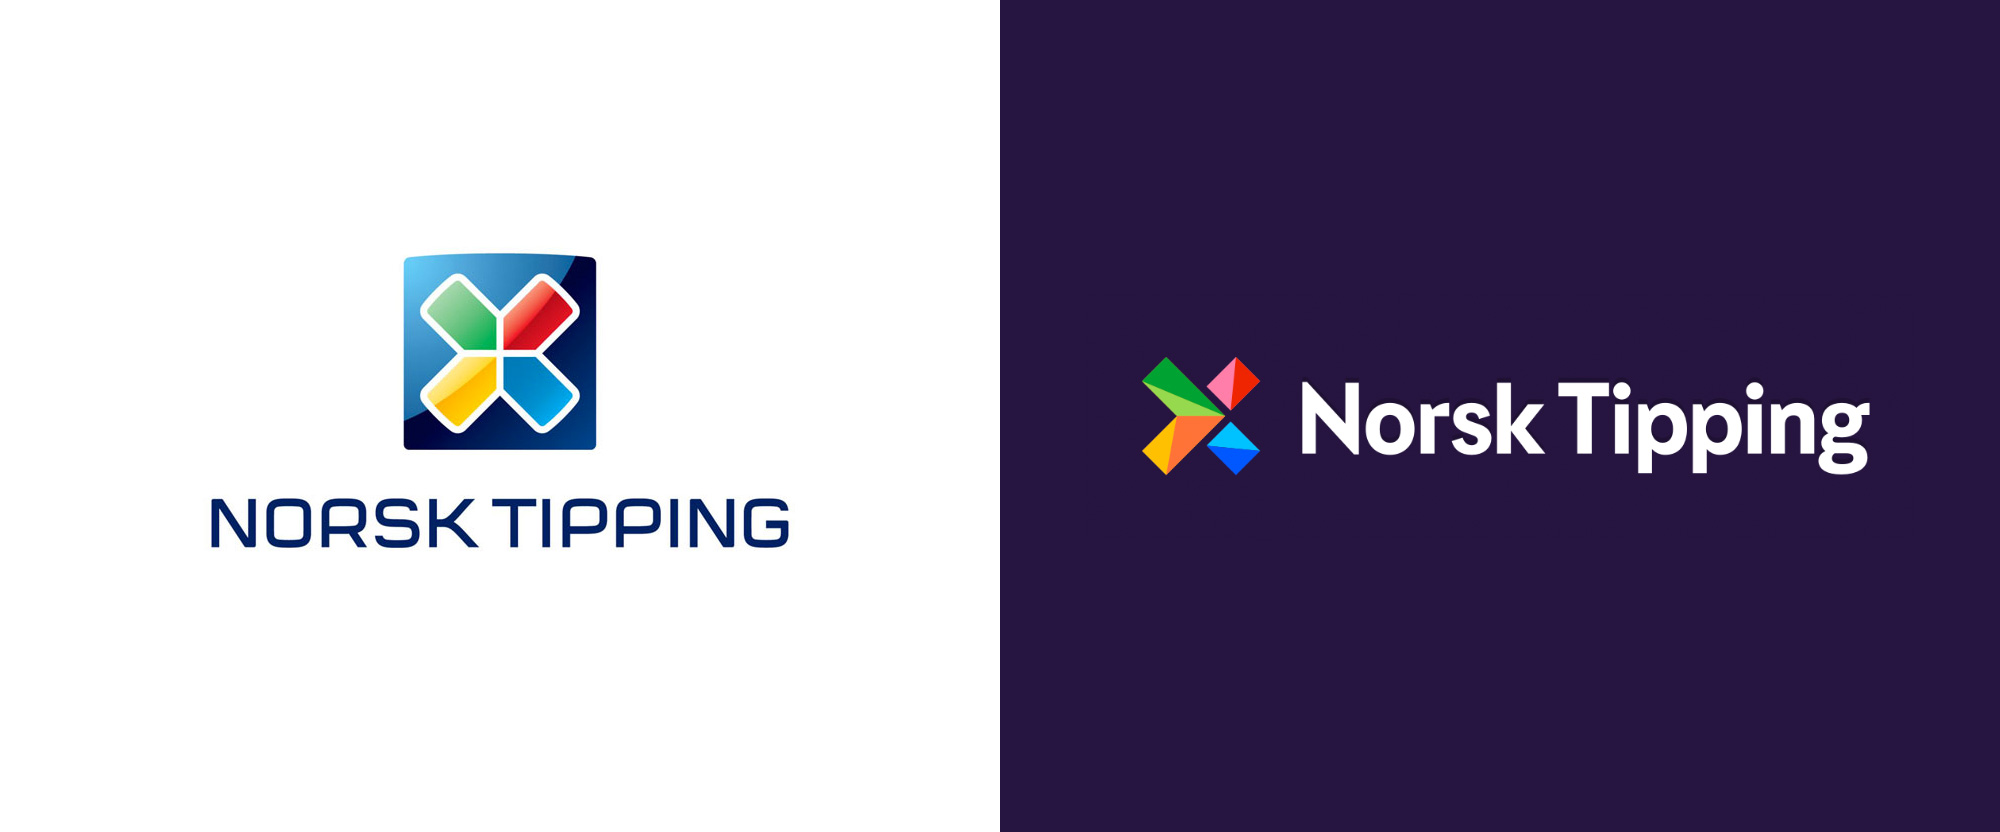 New Logo for Norsk Tipping by Dinamo